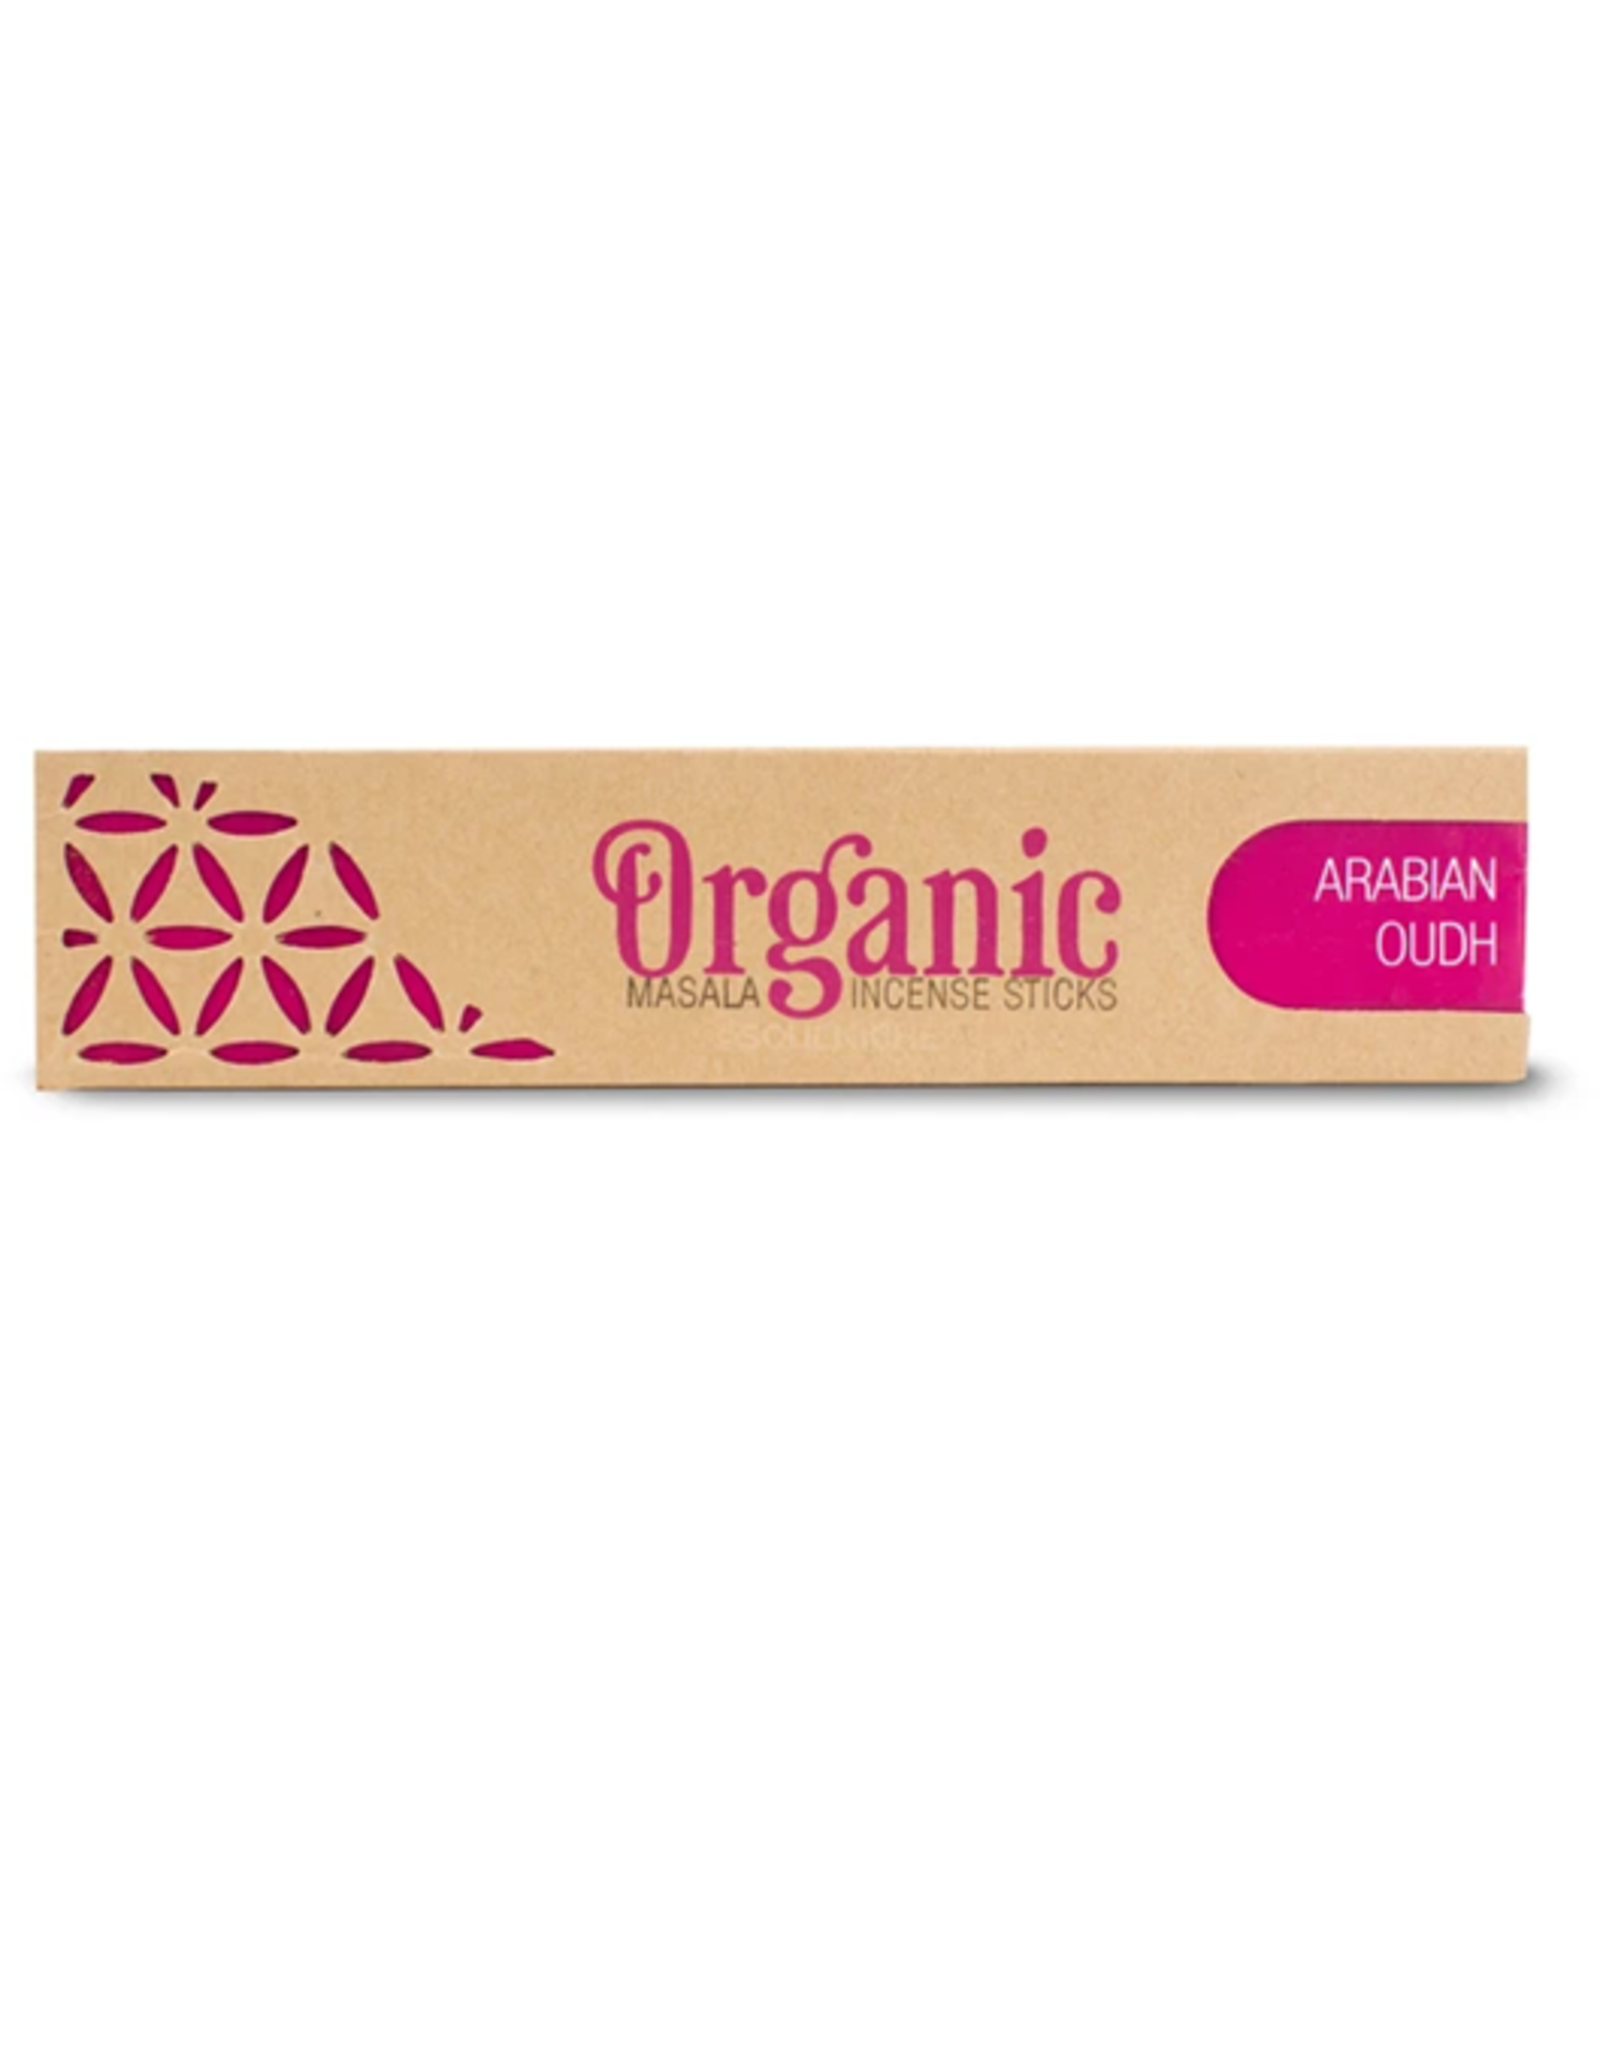 Organic Goodness Arabian oudh